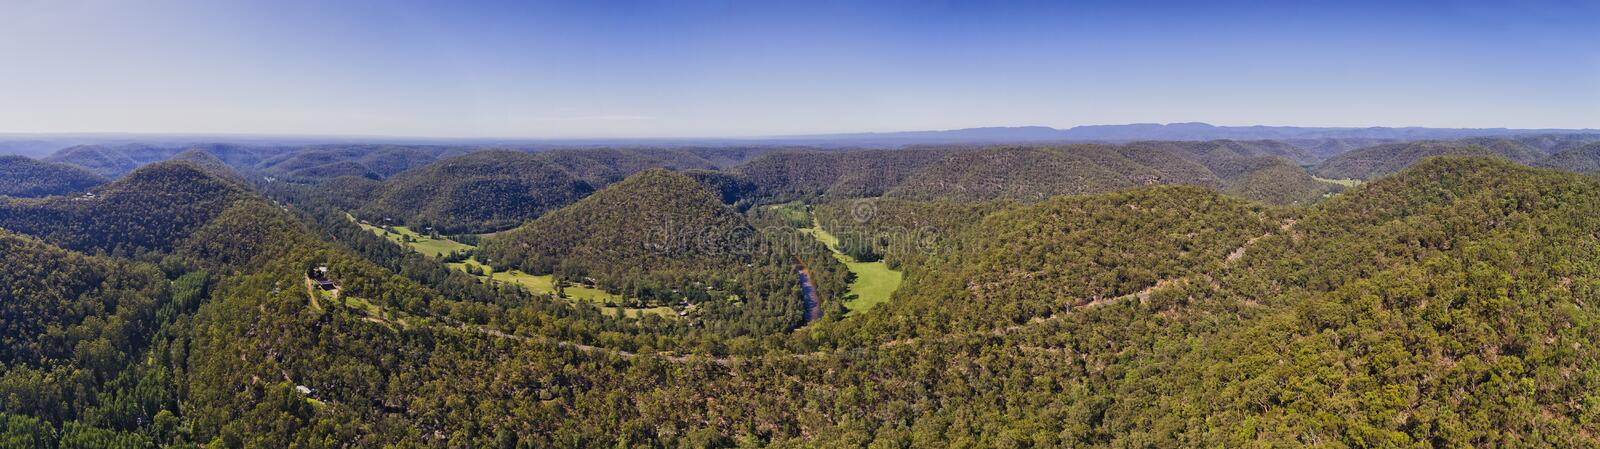 D Colo Heights Wide Pan. Putty road running on the top of hill range through gum-tree woods along Colo river in Colo heights part of Blue mountains national park stock images